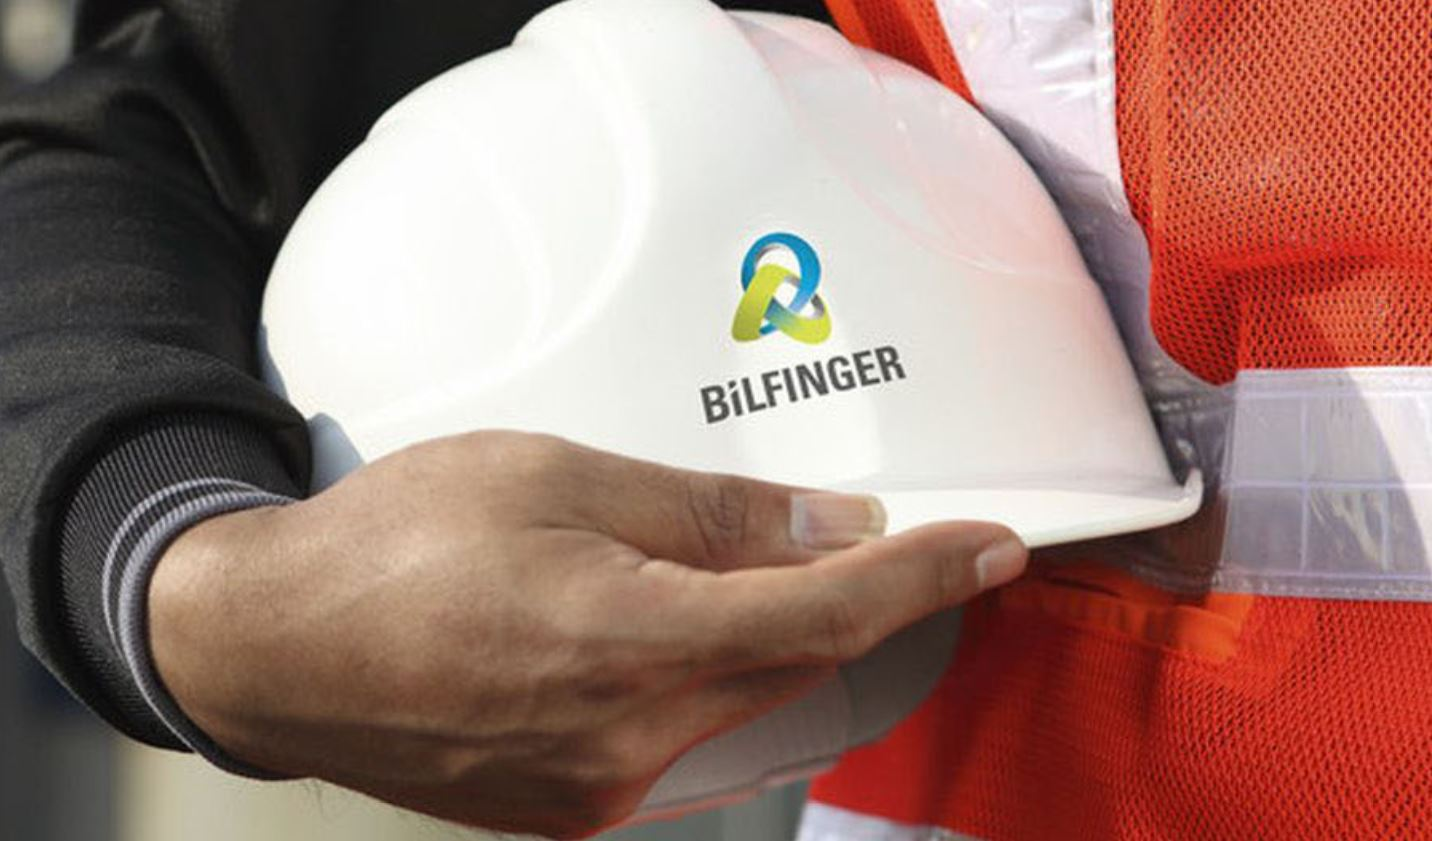 150 Furloughed Workers Face Redundancy as Bilfinger Confirms Cuts